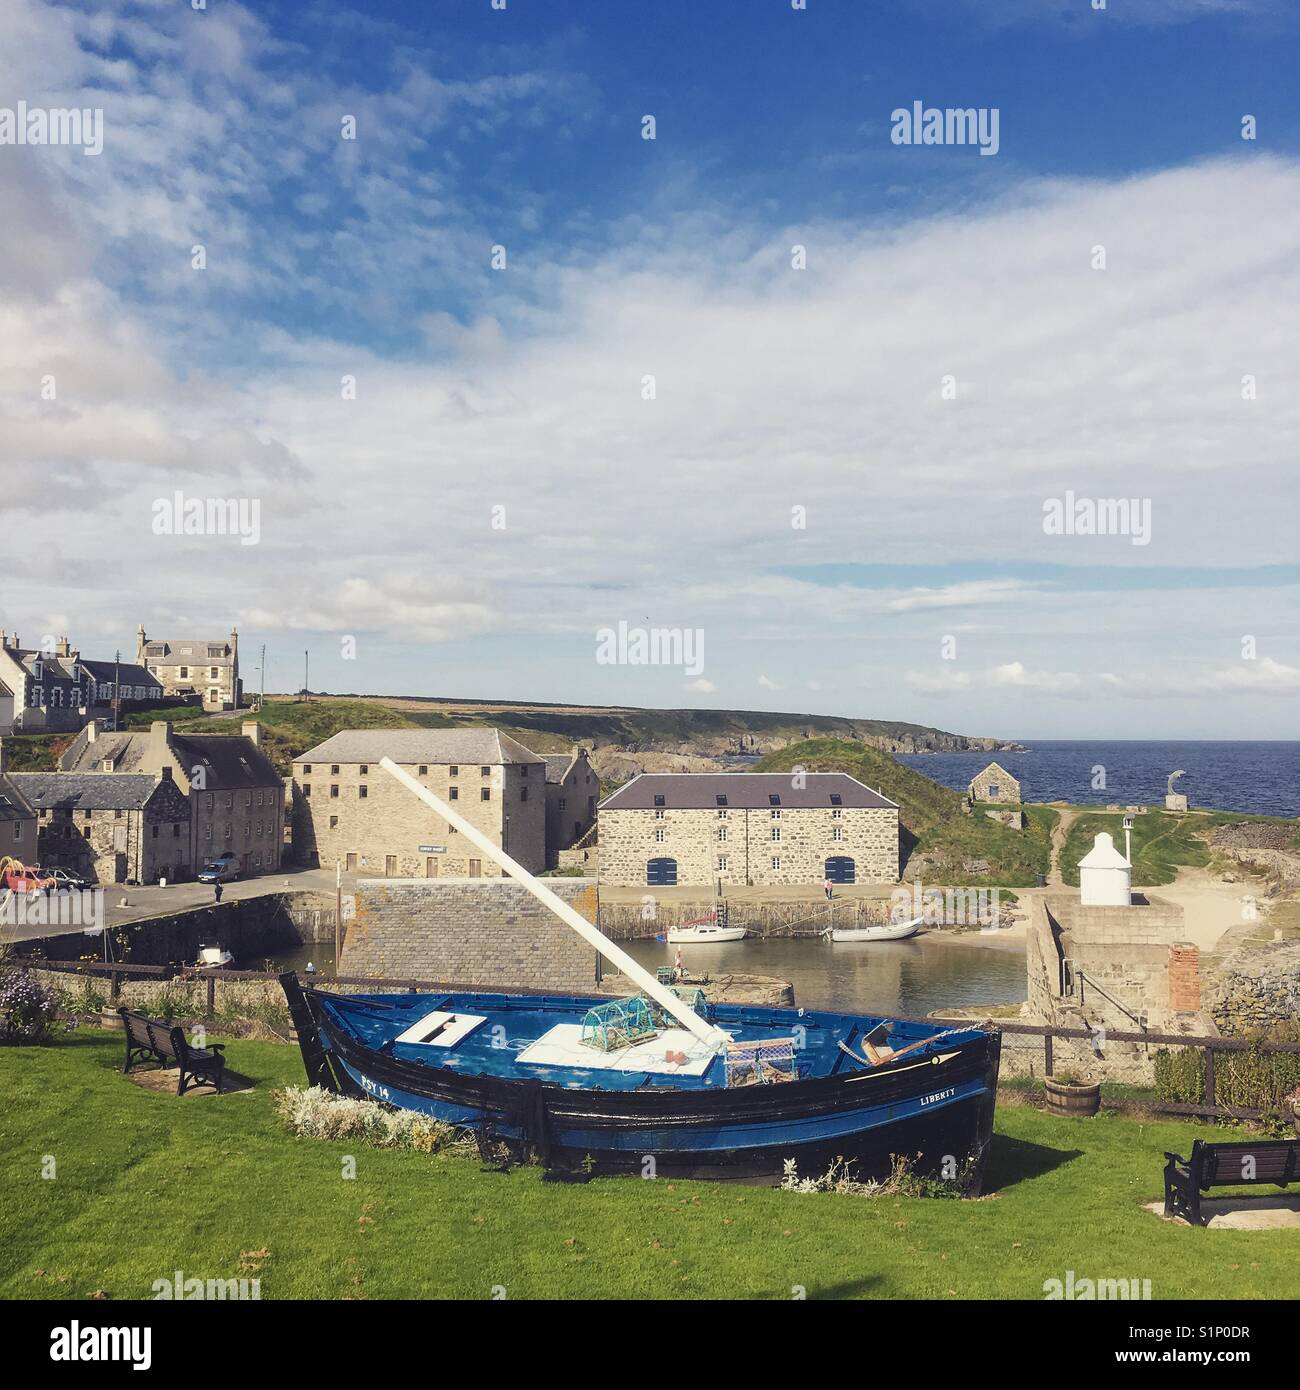 Portsoy harbour, Moray in the north east of Scotland - Stock Image